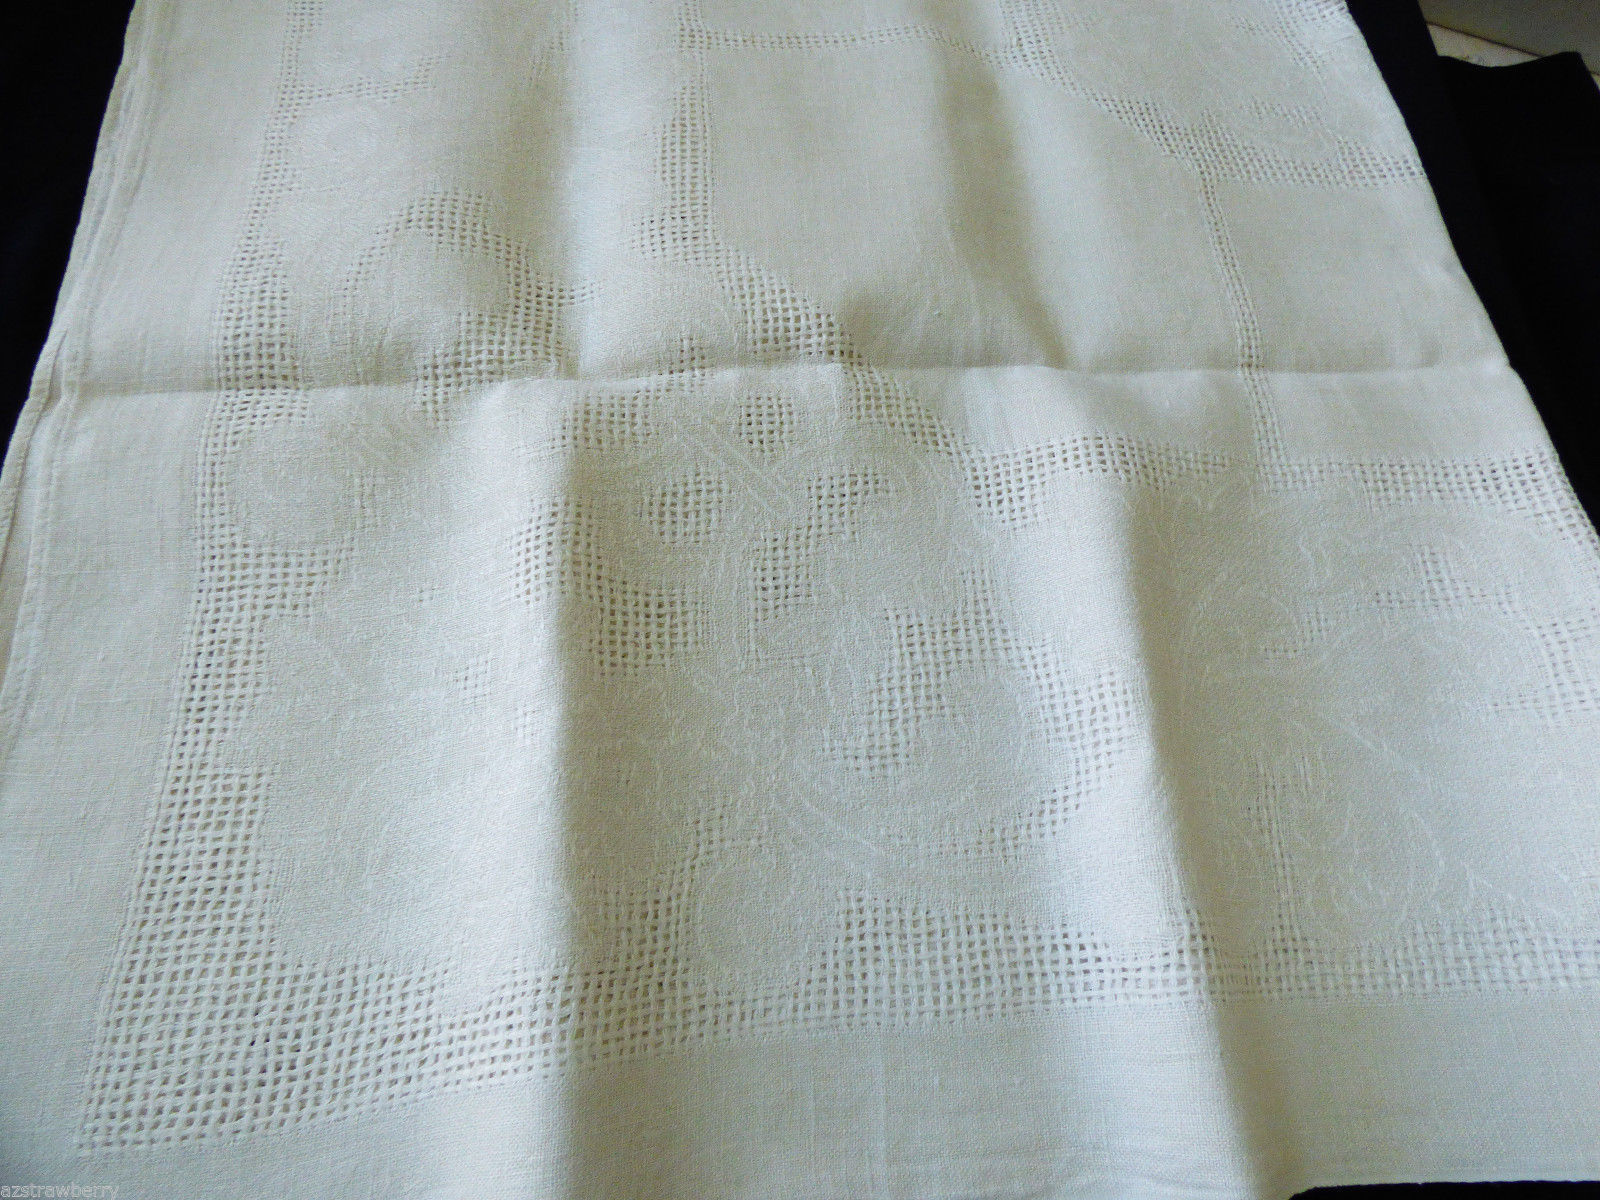 vtg ecru color linen tablecloth cotton linen blend 50x50